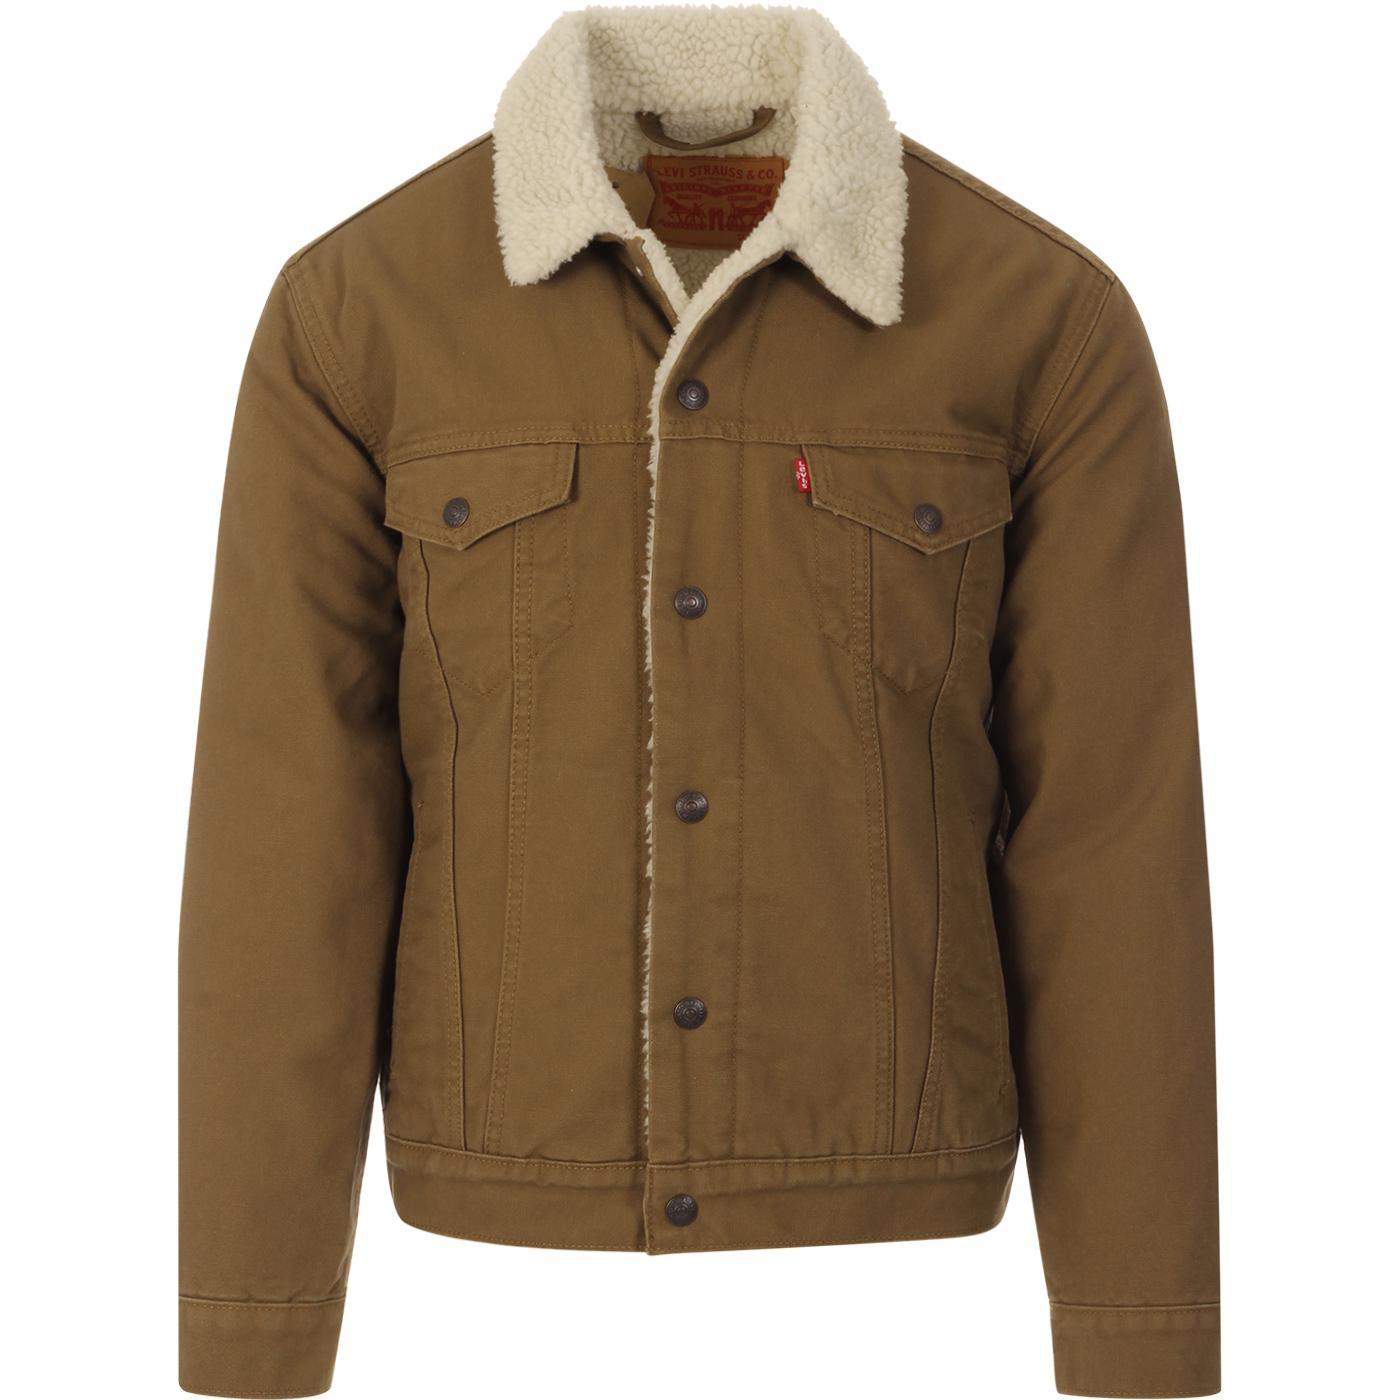 LEVI'S Type 3 Cougar Canvas Sherpa Trucker Jacket